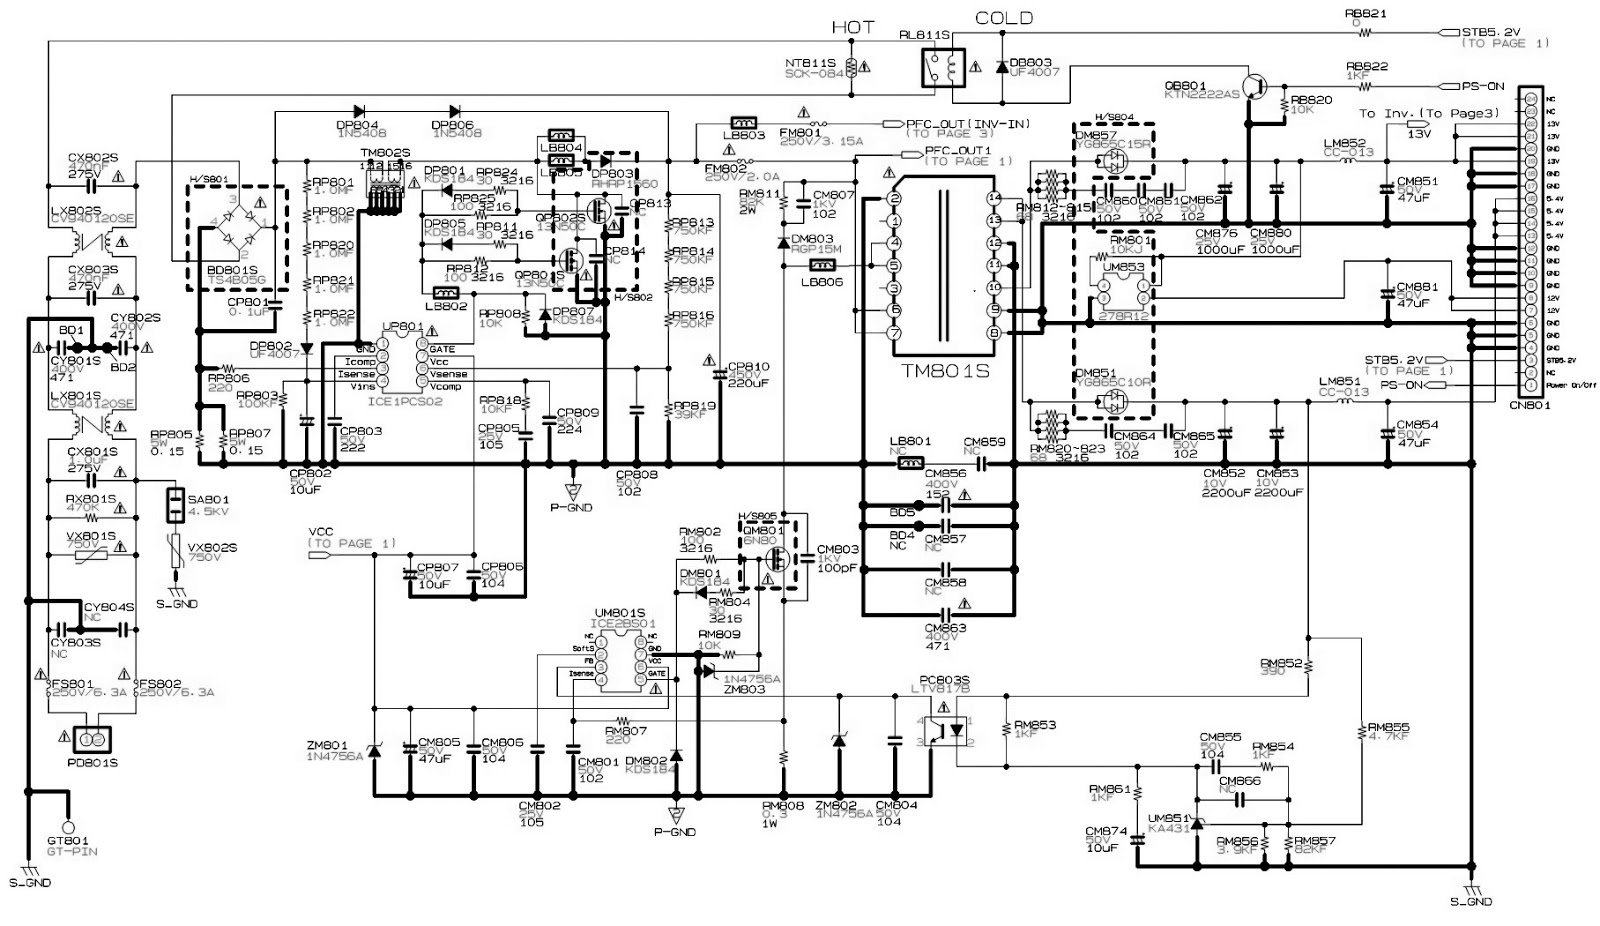 BN44 00165A SAMSUNG LED LCD TV CIRCUIT DIAGRAM